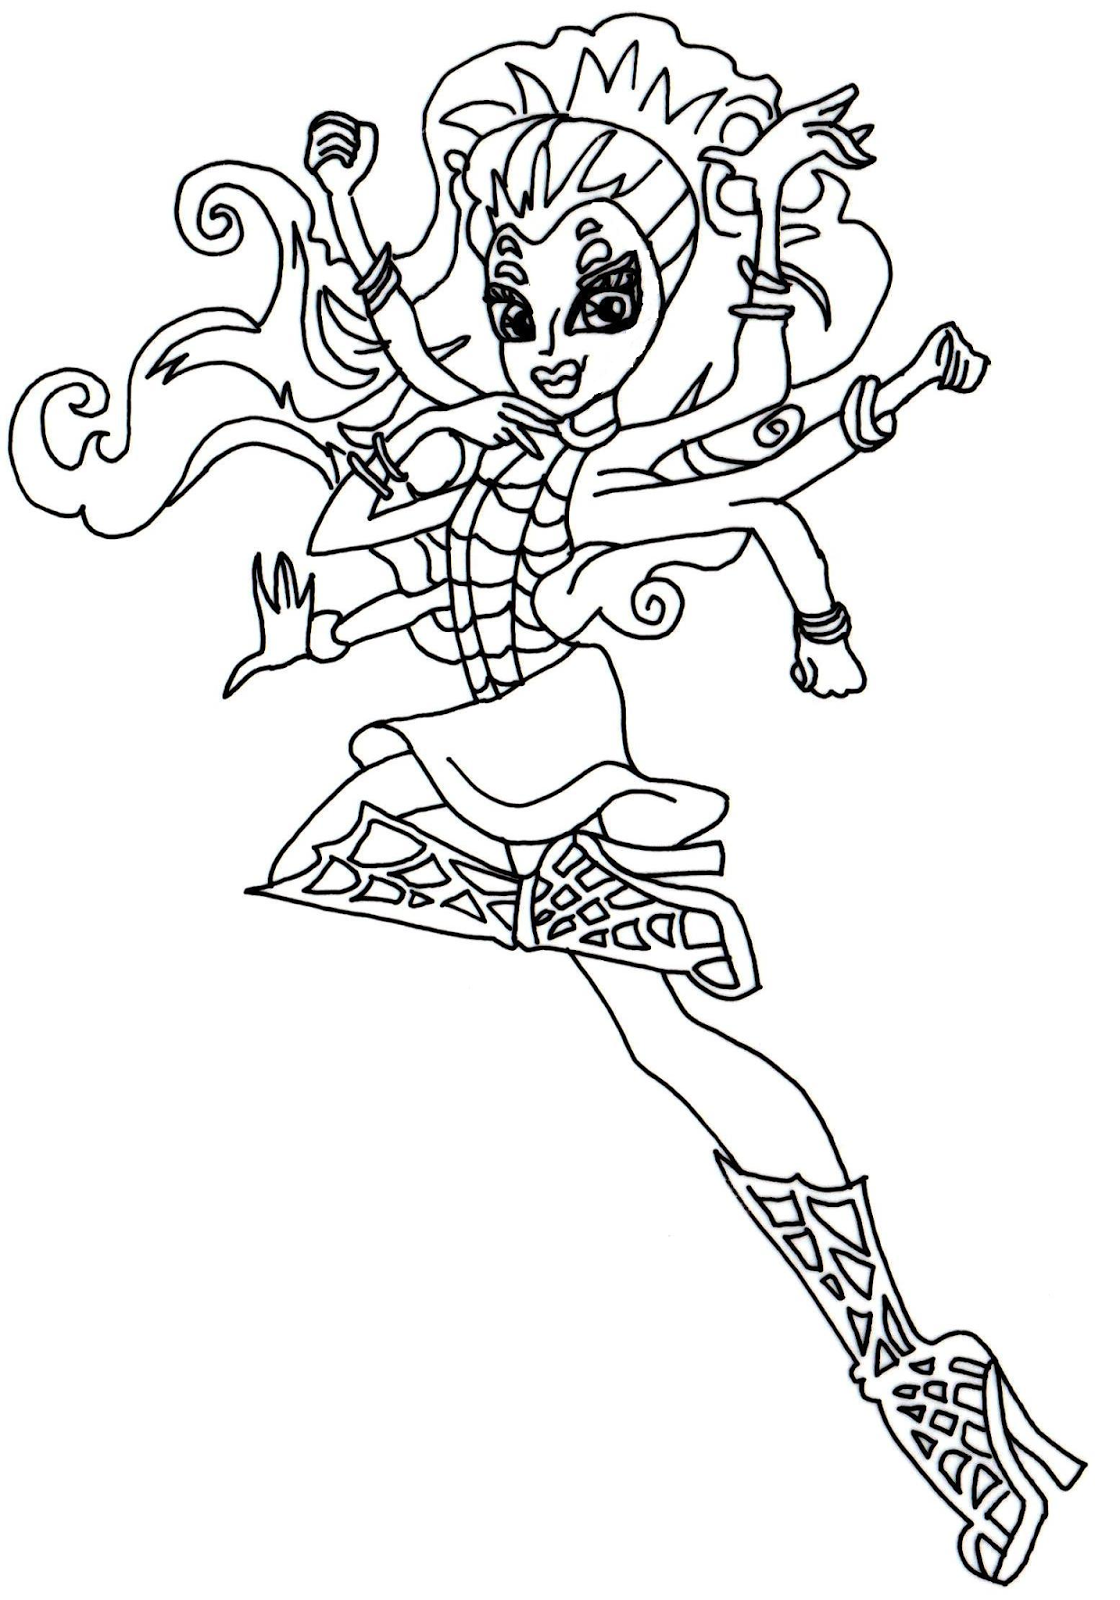 free printable monster high coloring pages december 2013